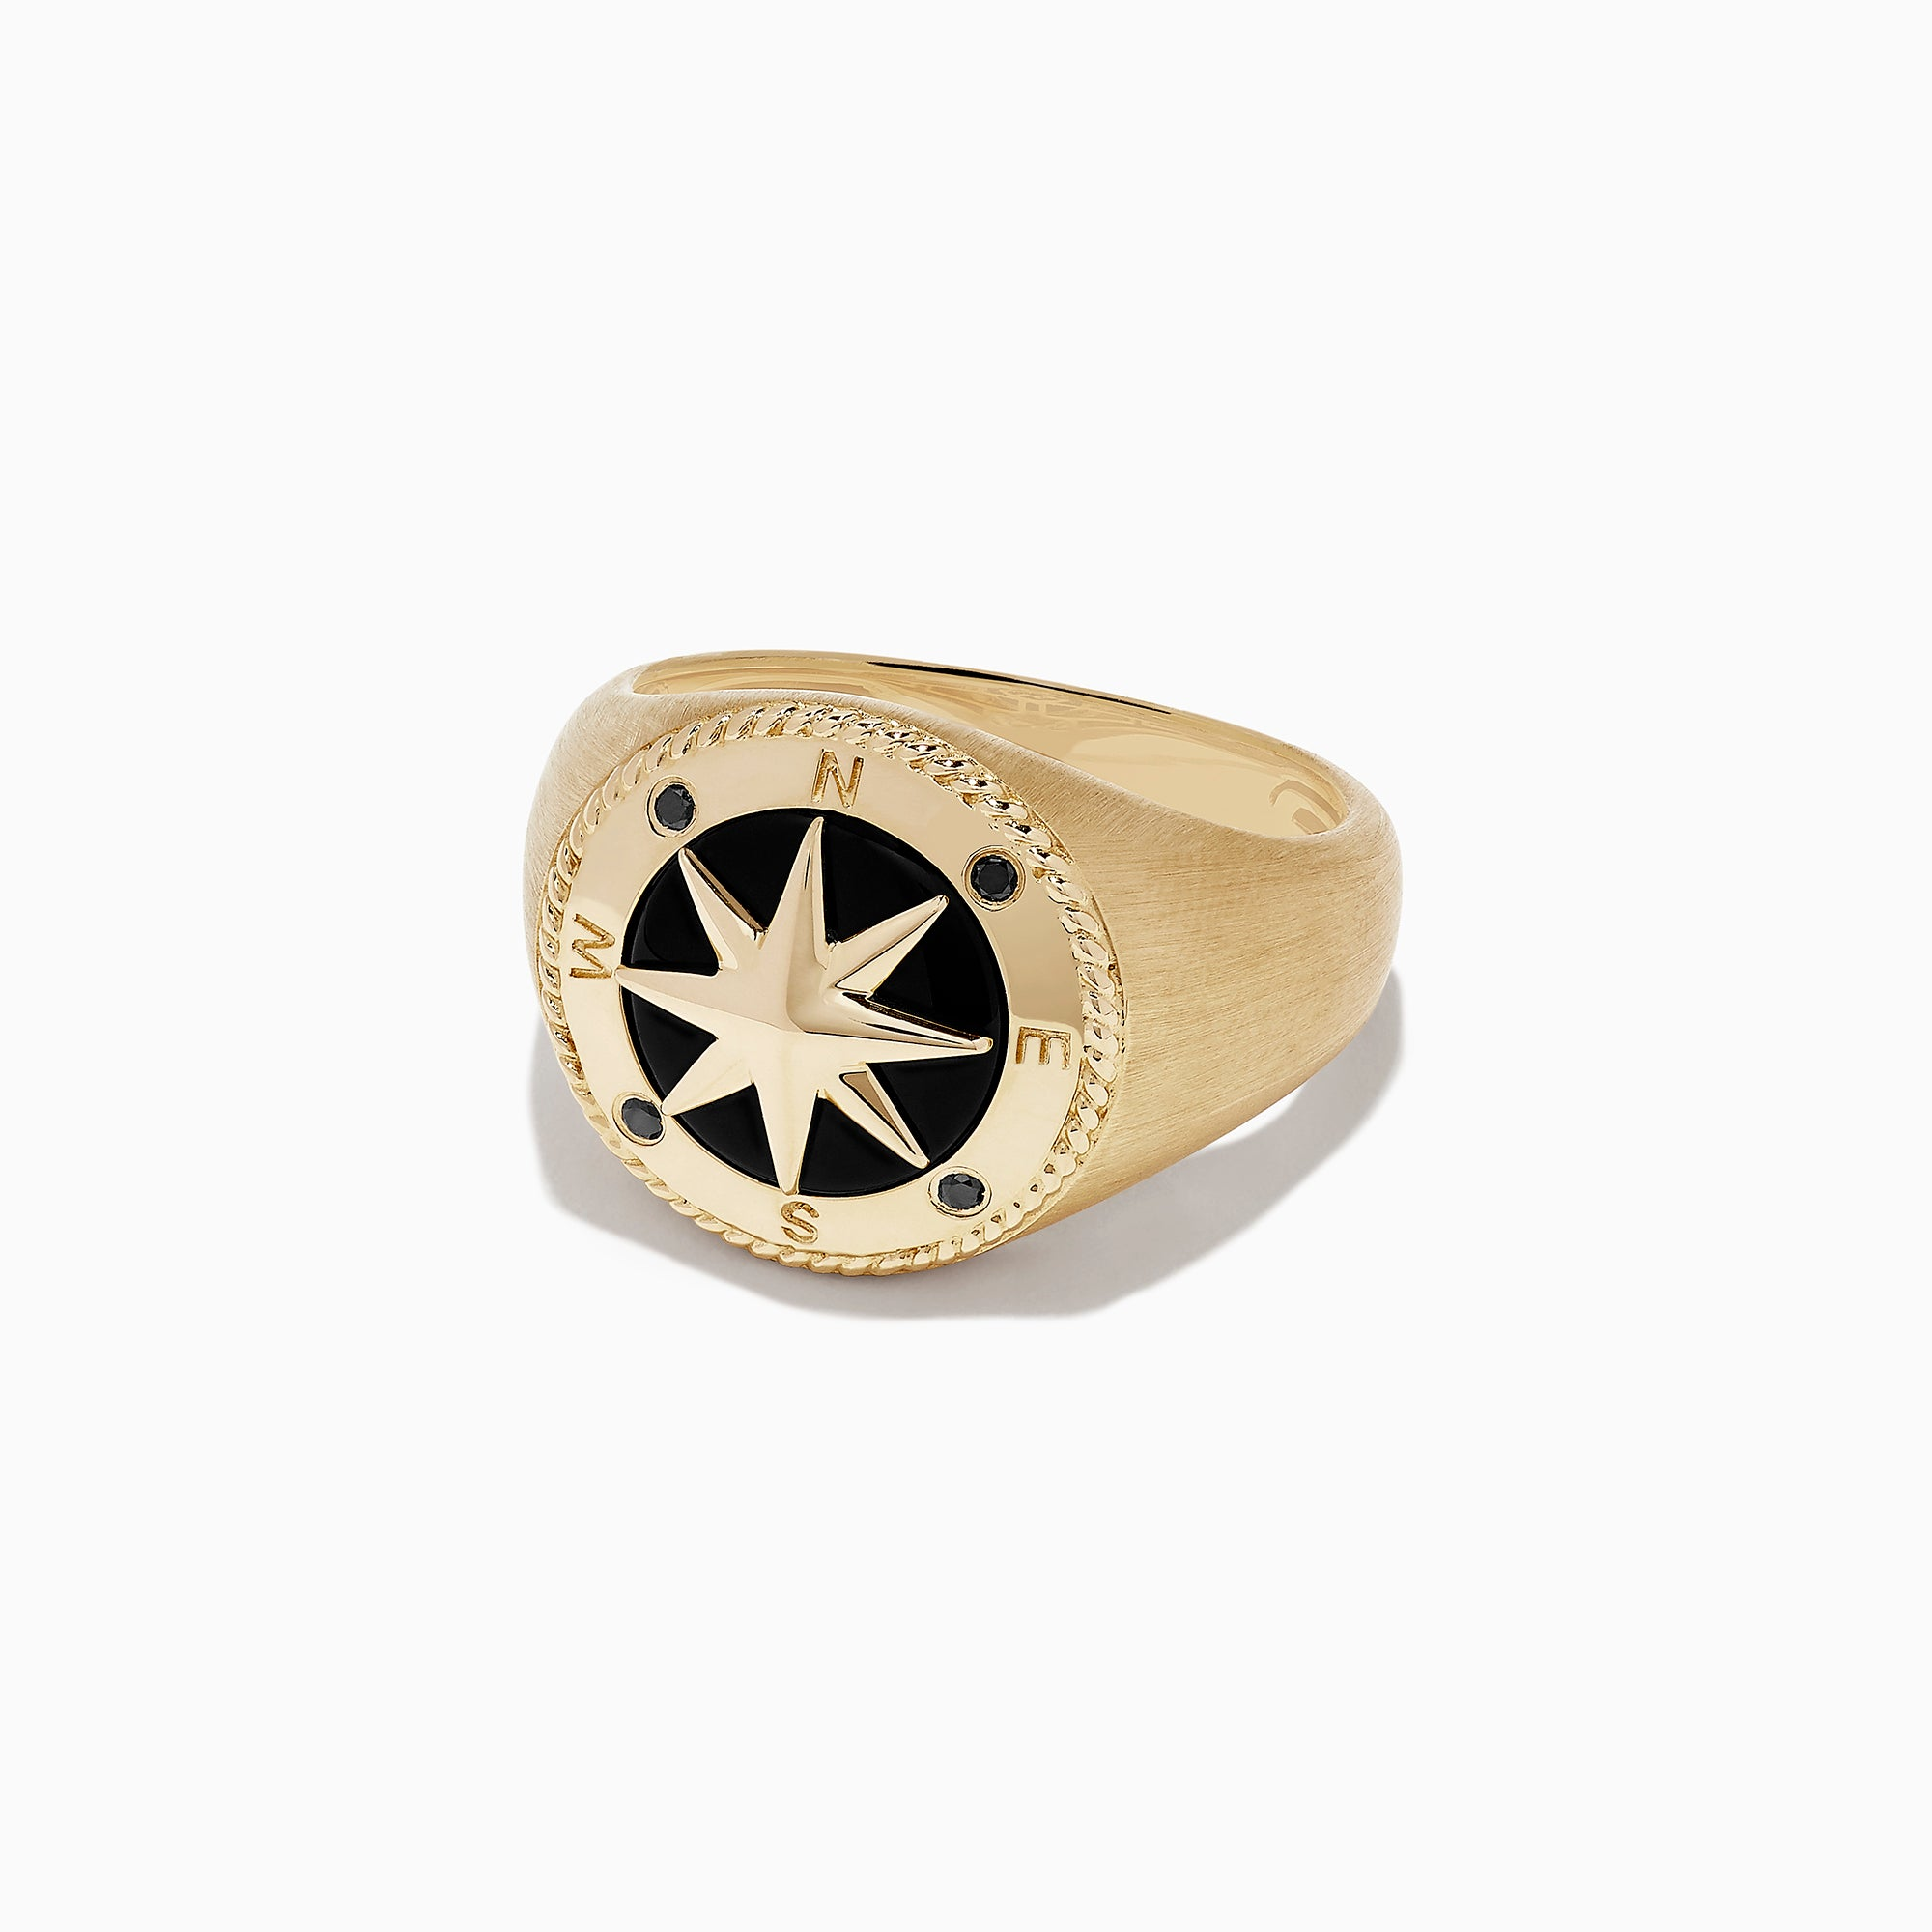 Effy Men's 14K Yellow Gold Onyx and Black Diamond Compass Ring, 3.02 TCW